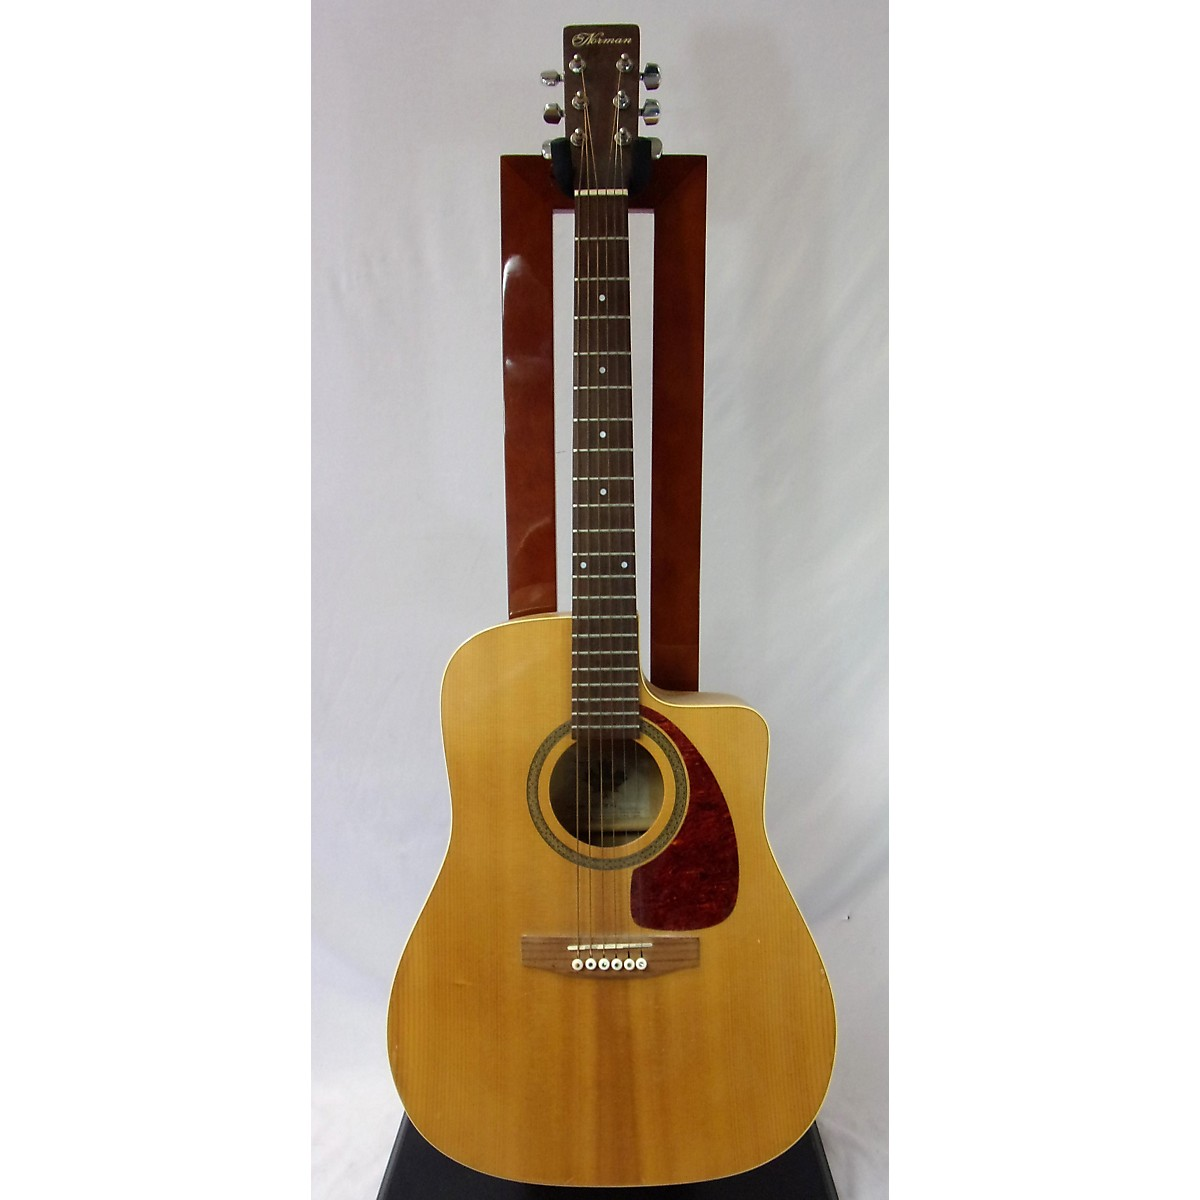 Norman B20CWHG Acoustic Guitar